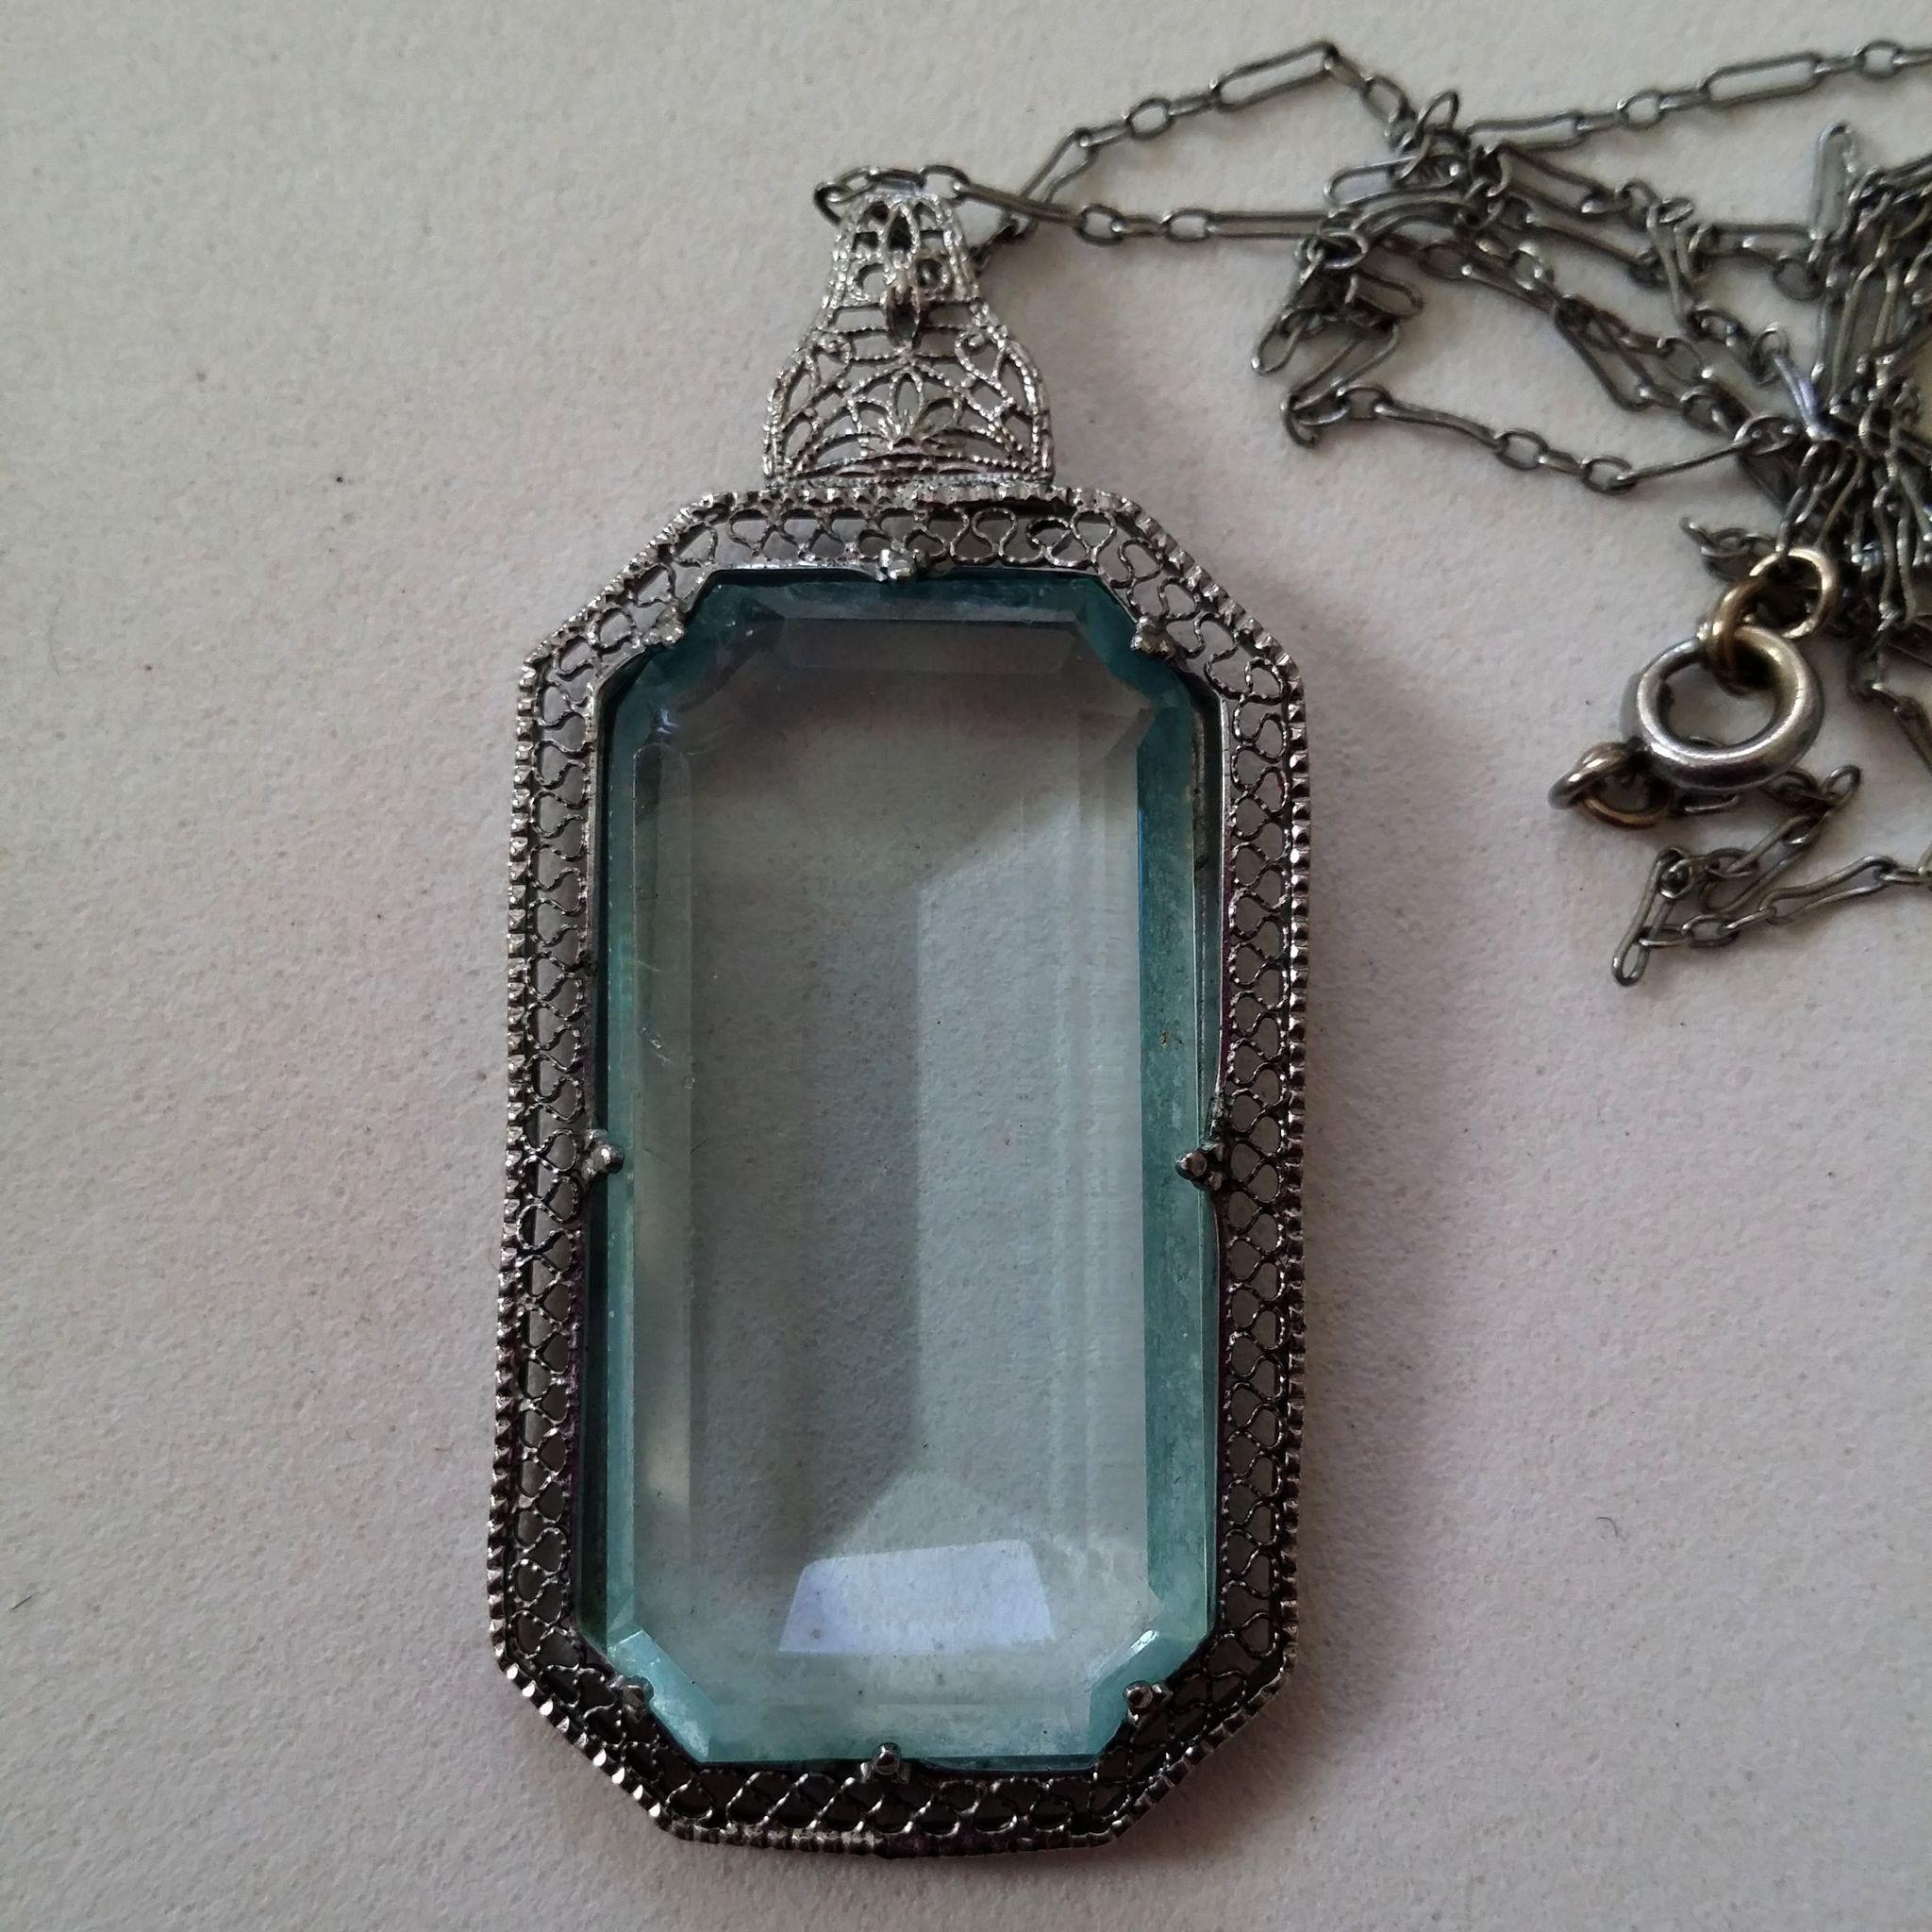 Lg faux aquamarine in filigree pendant necklace fancy chain roll over large image to magnify click large image to zoom aloadofball Gallery